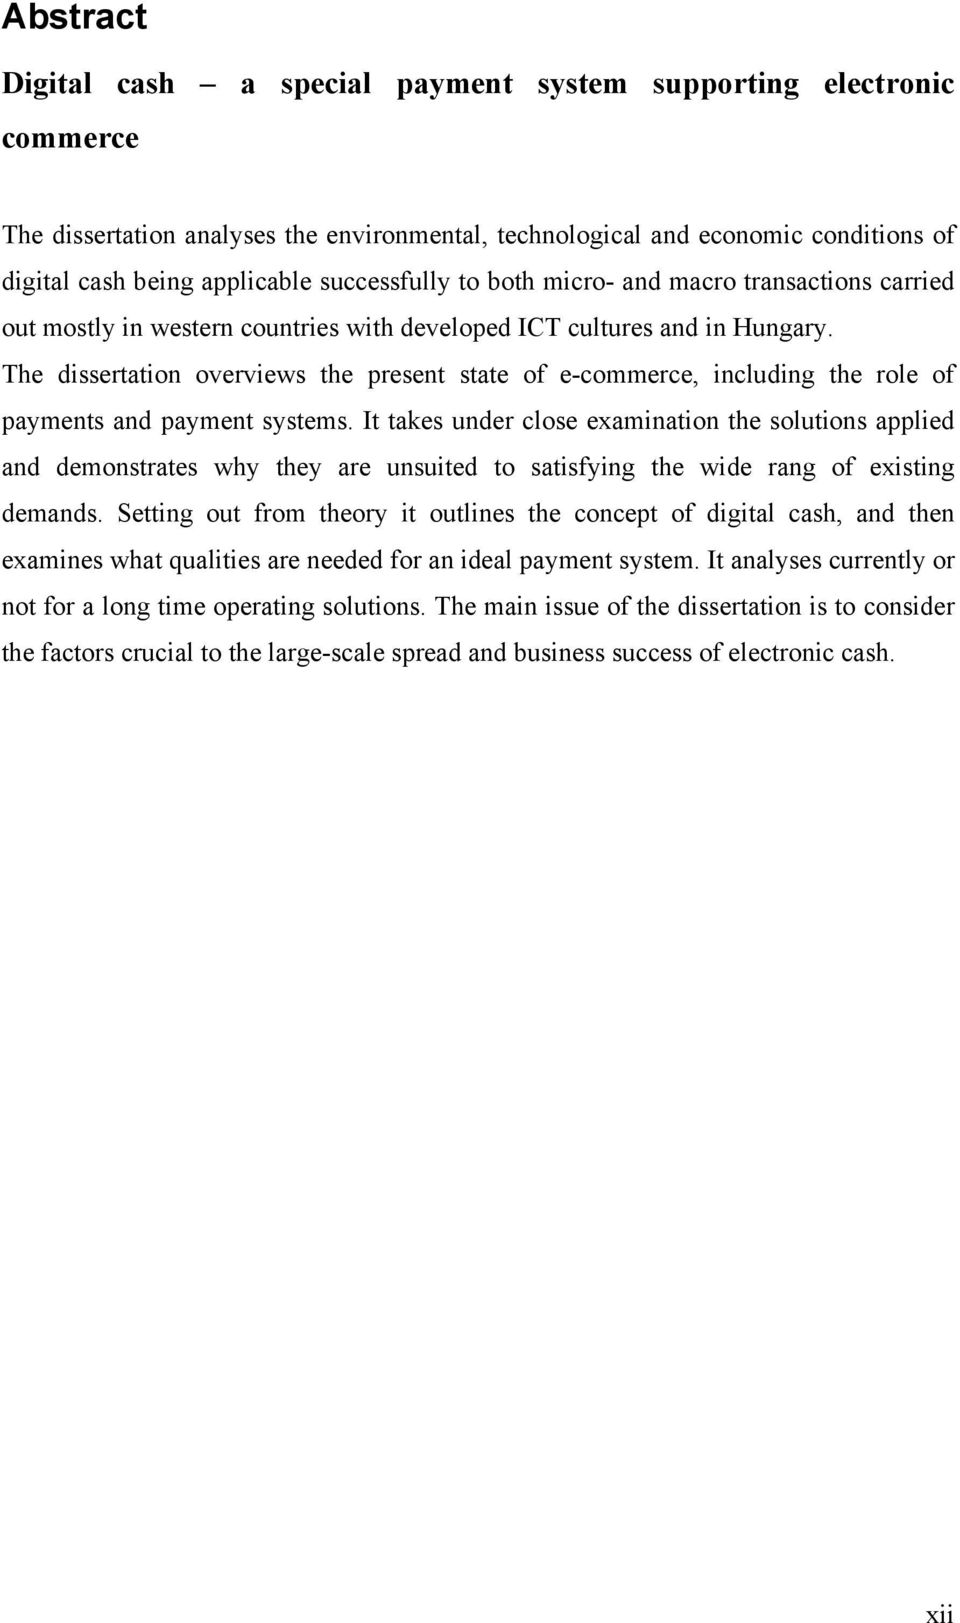 The dissertation overviews the present state of e-commerce, including the role of payments and payment systems.